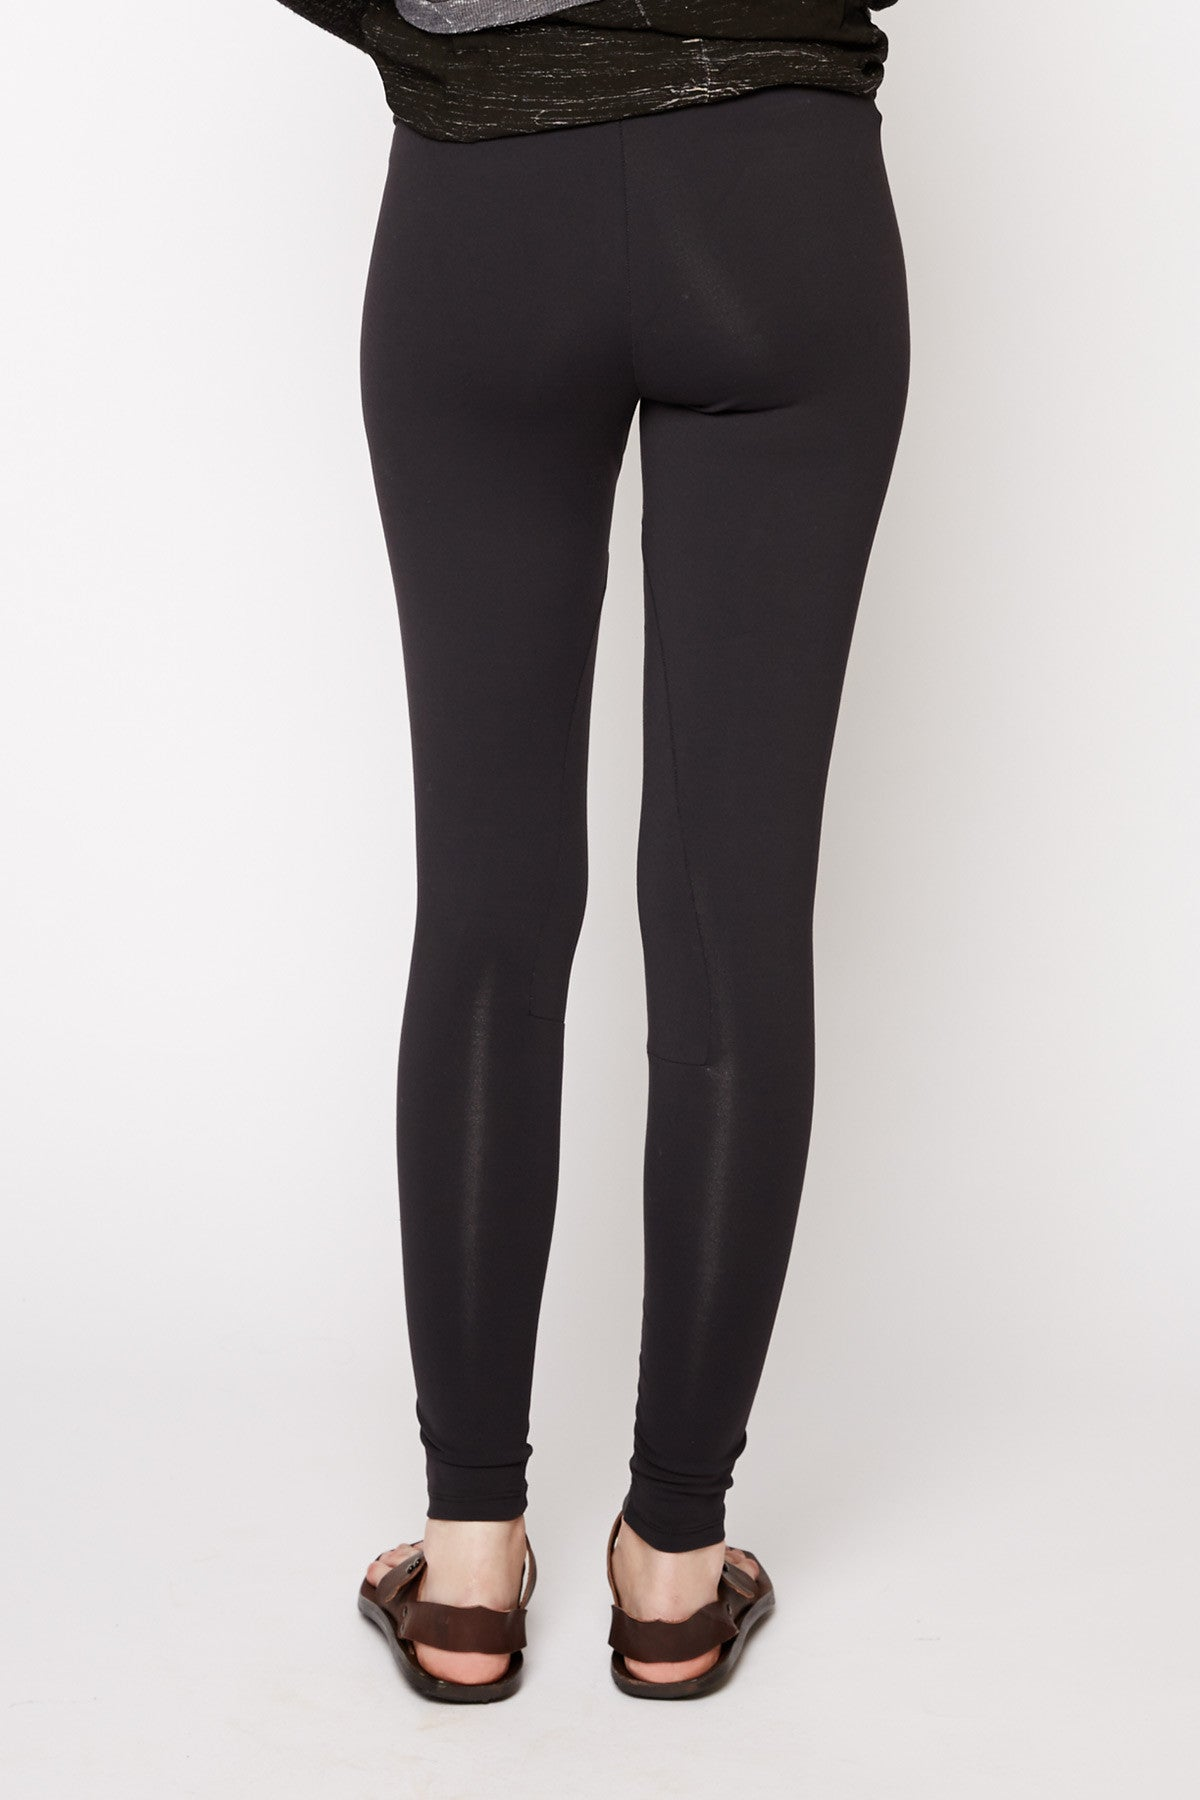 Thetys Faux Leather Leggings by Willow & Clay